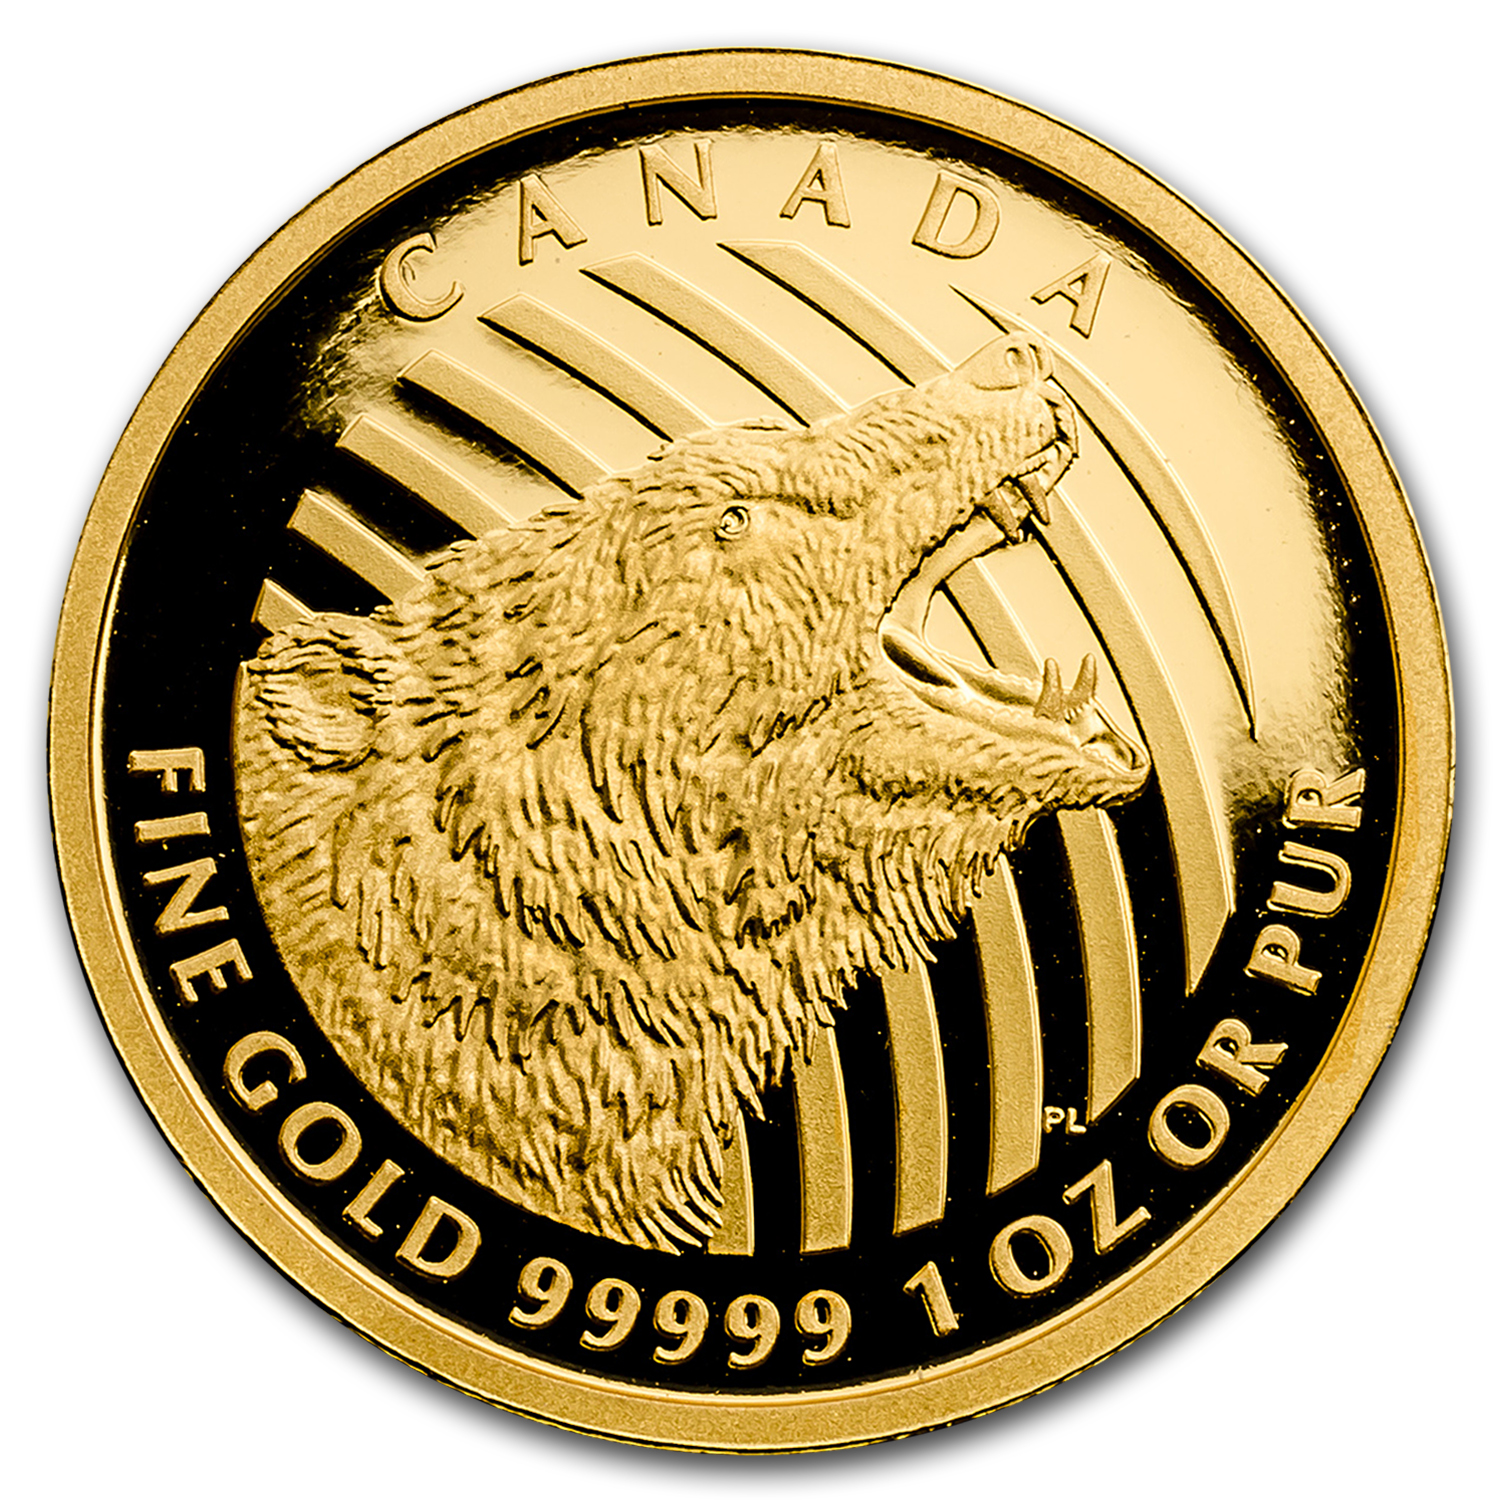 2016 Canada 1 oz Gold Roaring Grizzly Bear .99999 Proof